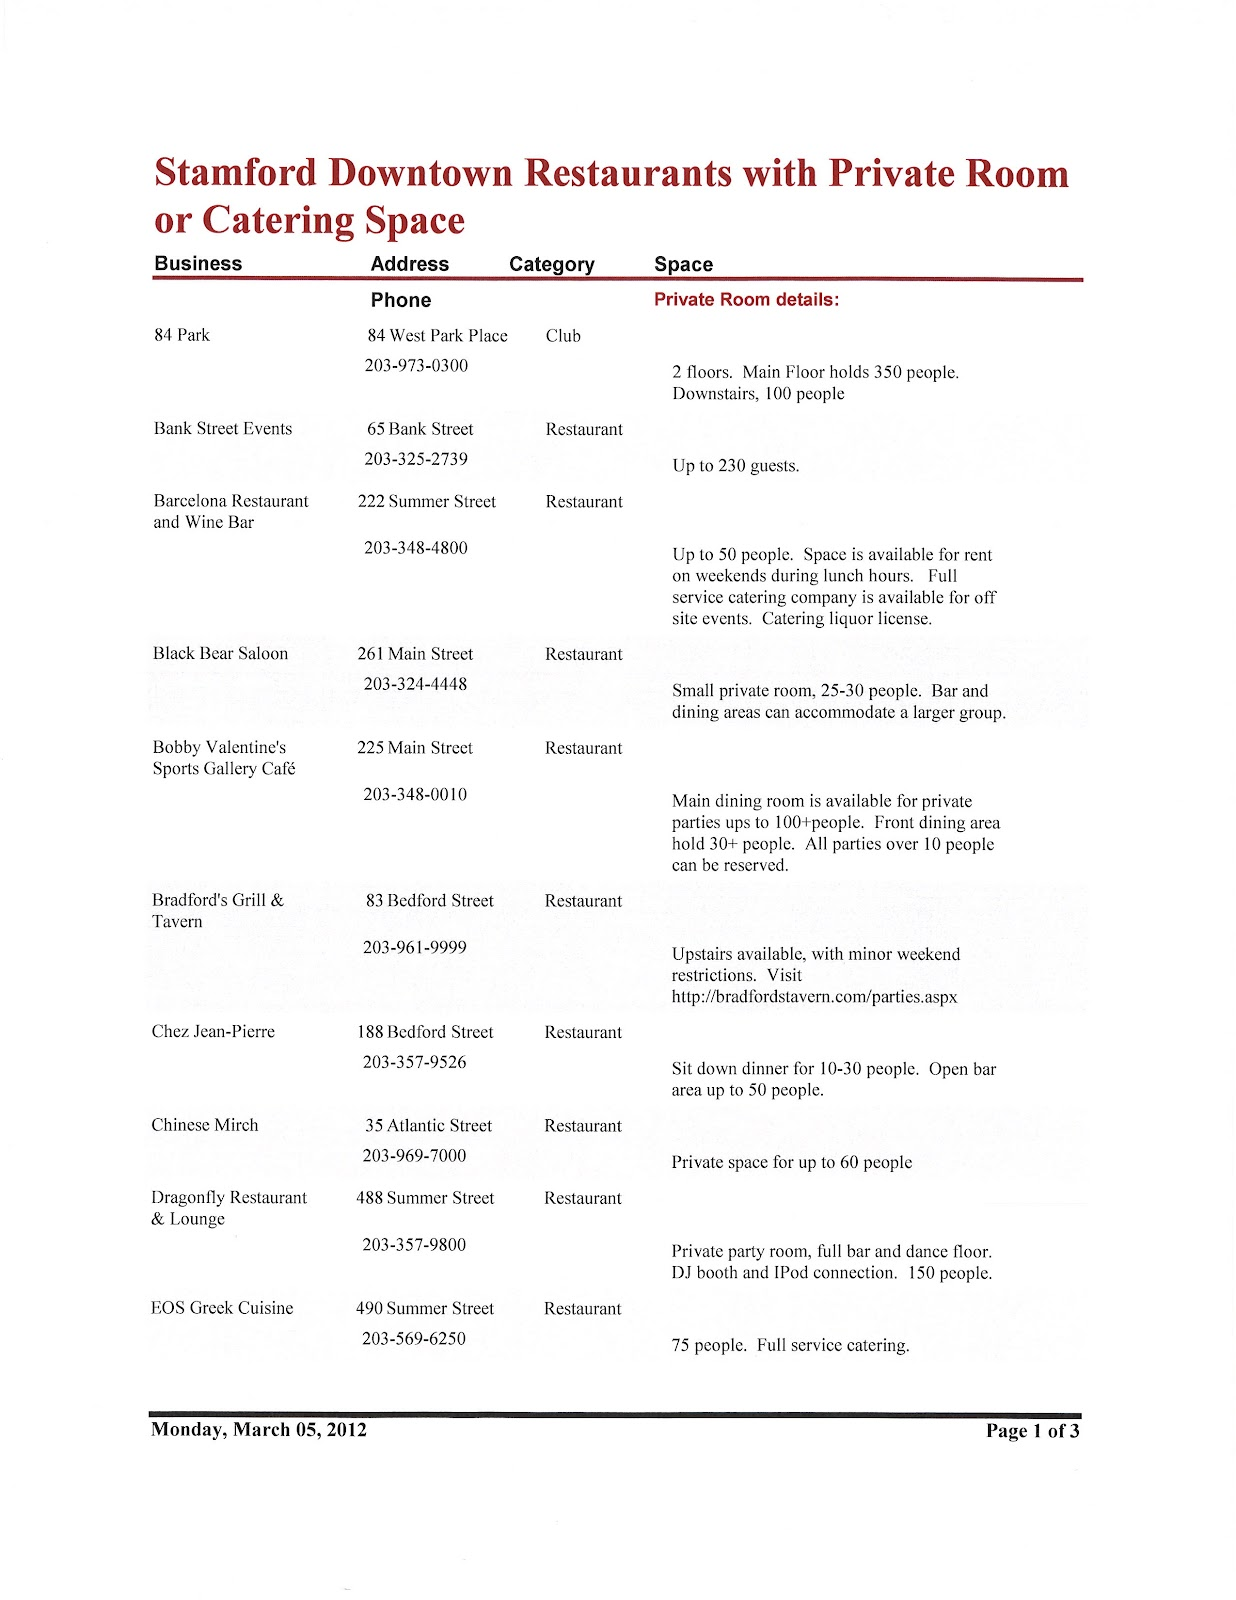 Stamford Downtown Events Private Room Rental Info